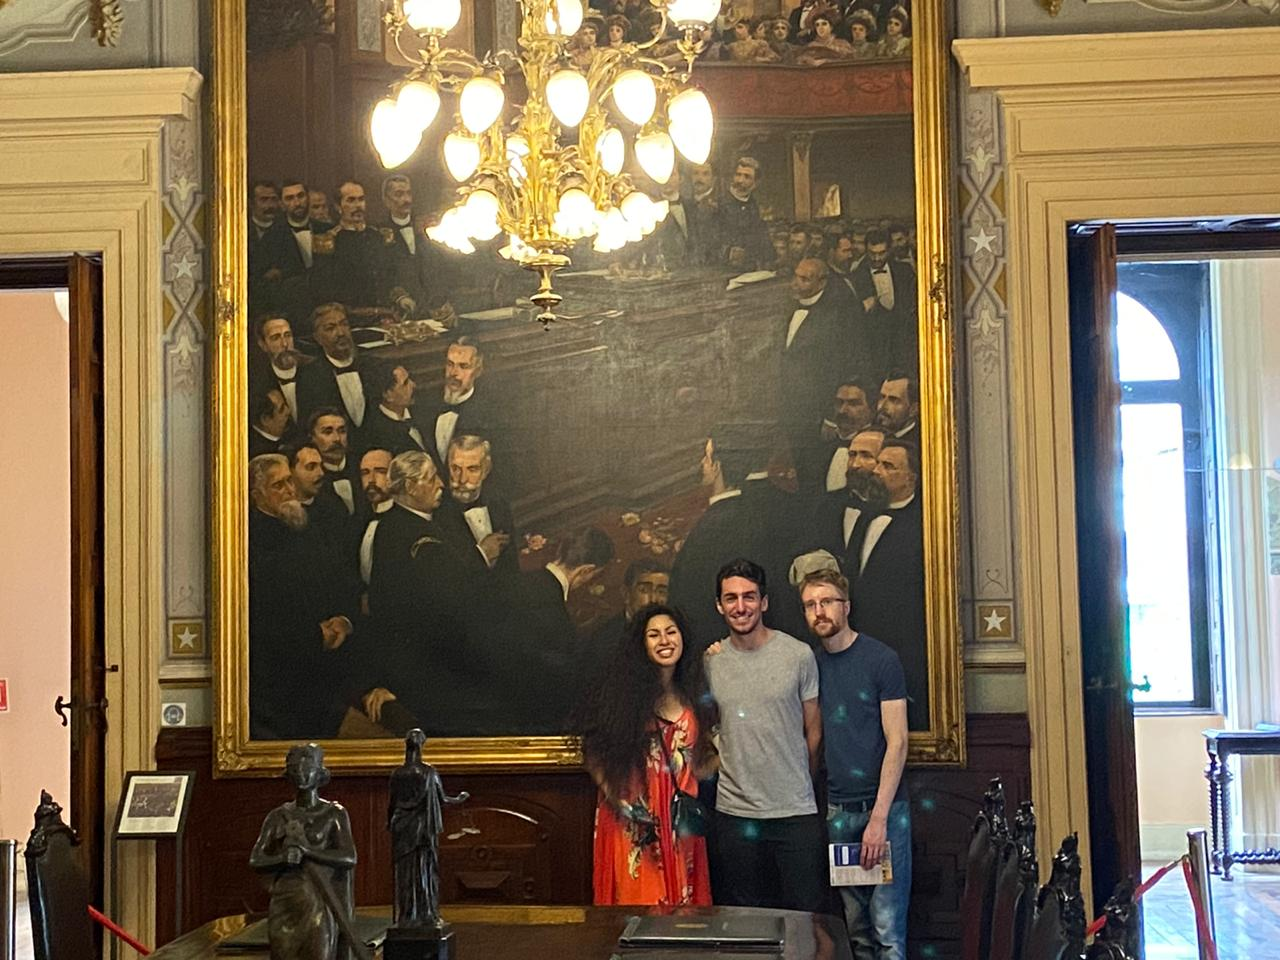 Students in the Ministerial Hall at Catete Palace